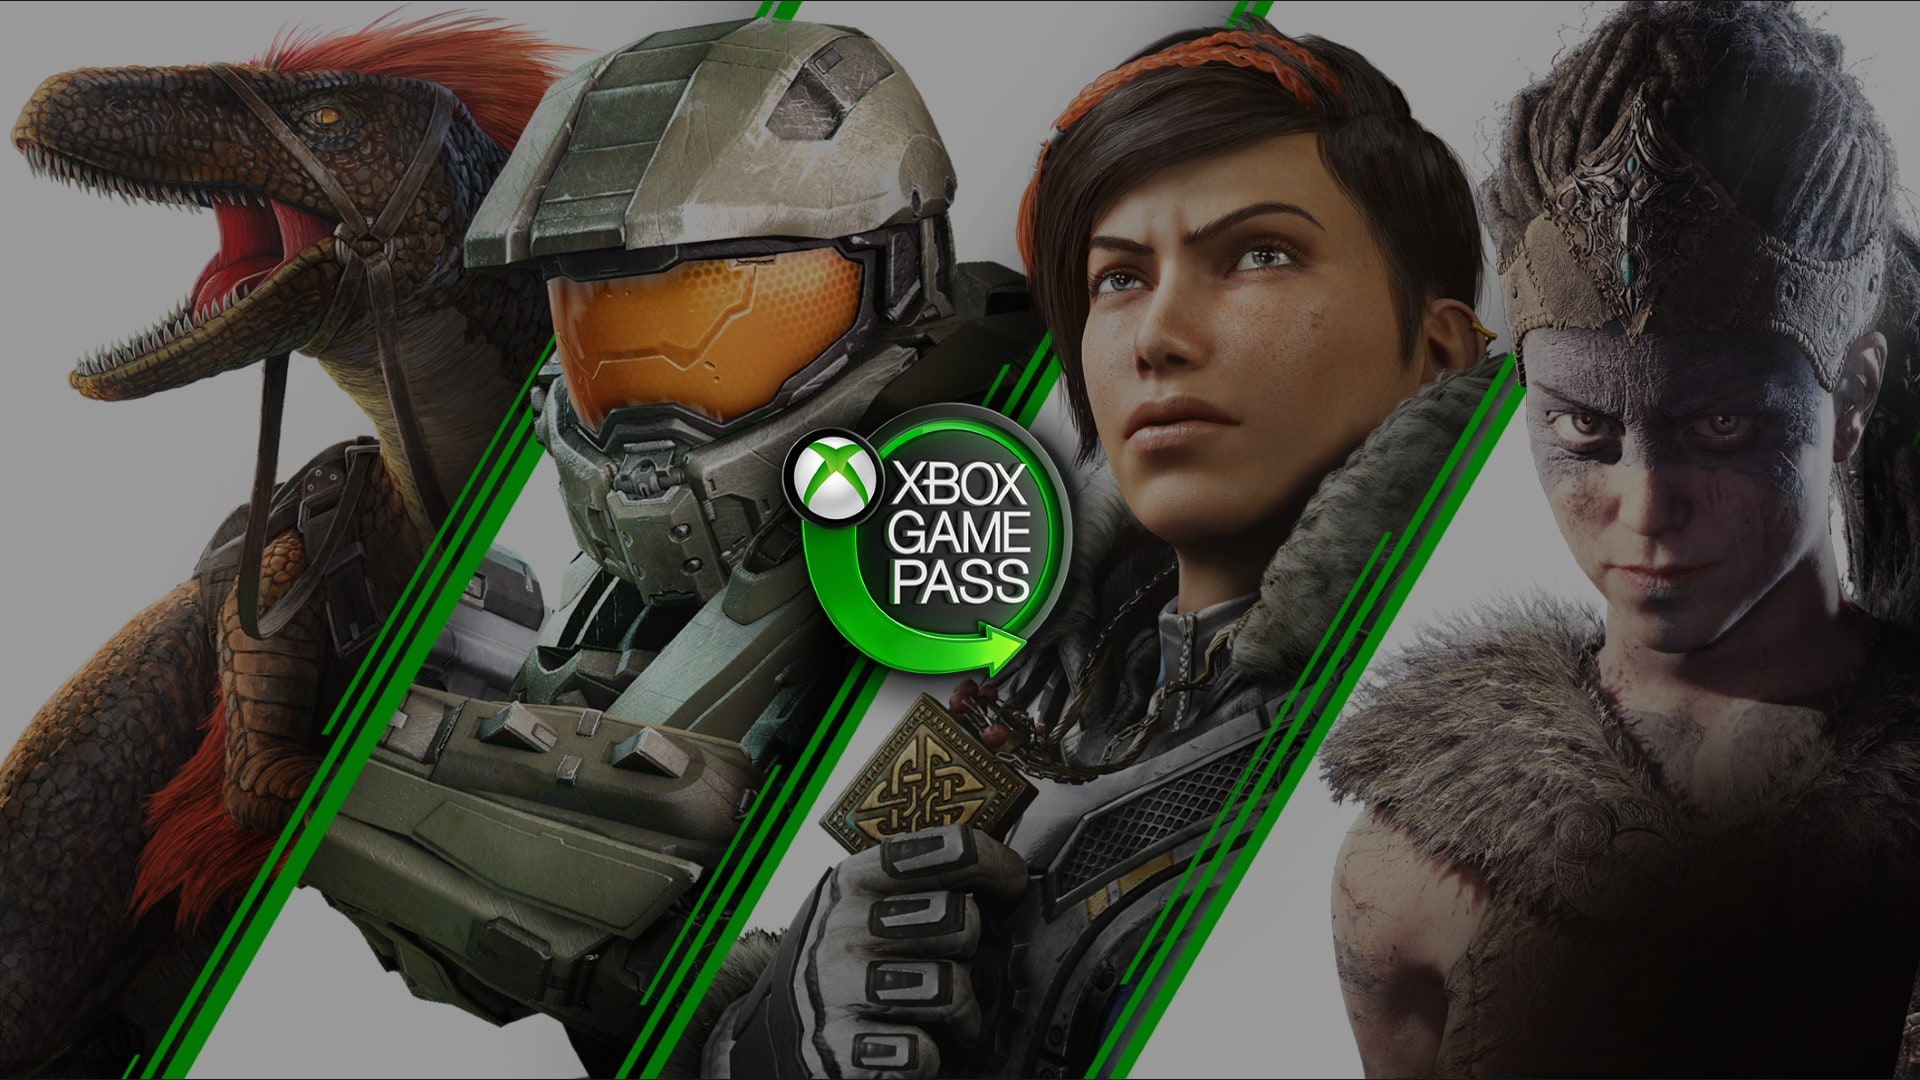 Microsoft shares pricing details for Xbox Game Pass on PC